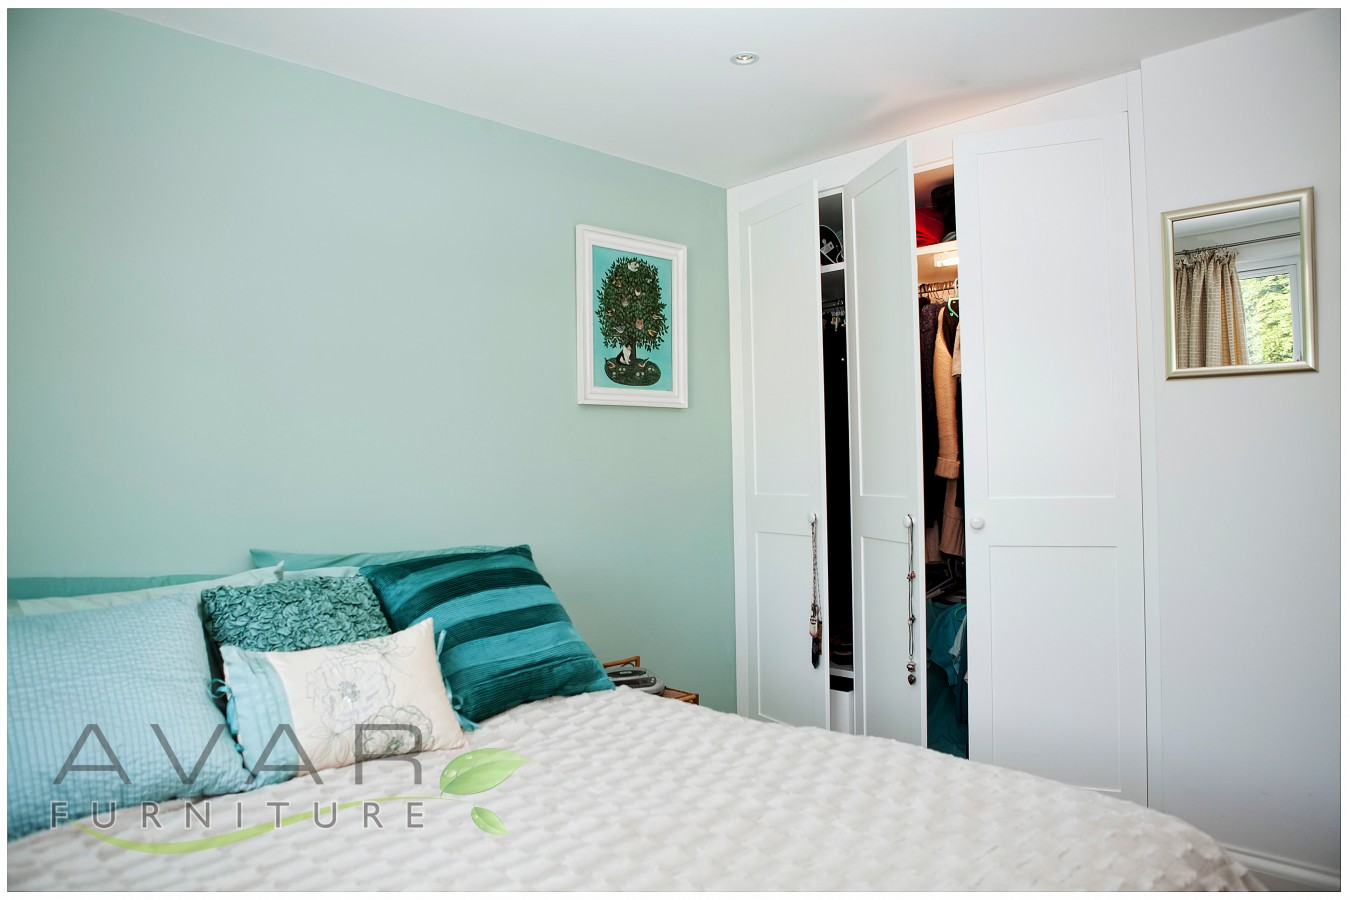 Fitted wardrobe ideas gallery 11 north london uk for Fitted bedroom ideas